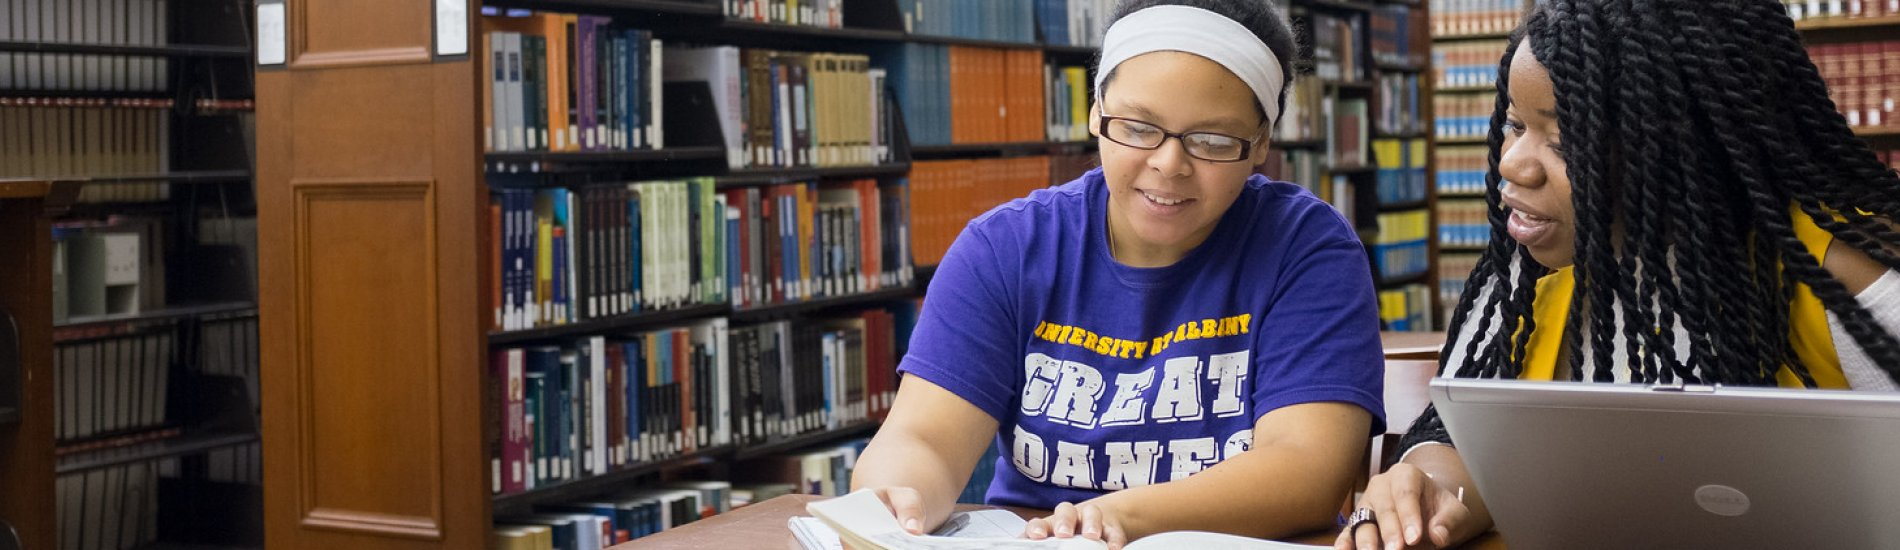 Students studying in the UAlbany Dewey Library